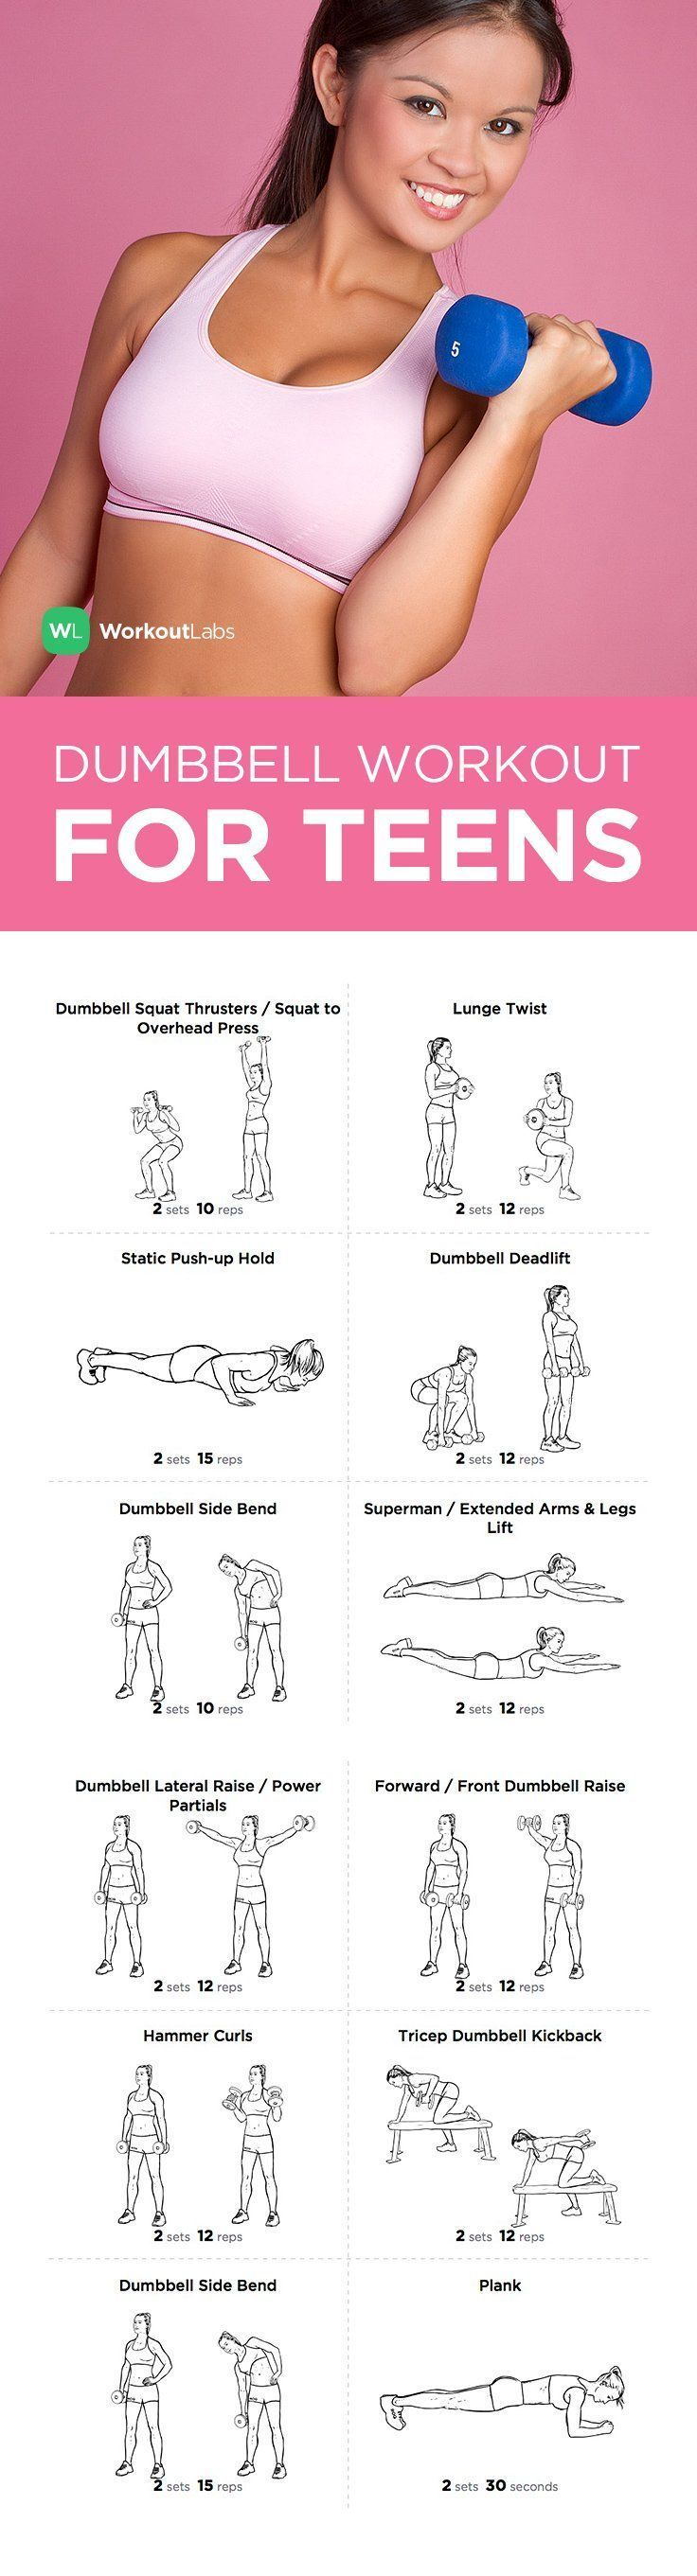 Learn These Full Body Dumbbell Workout Routine At Home Pdf {Swypeout}